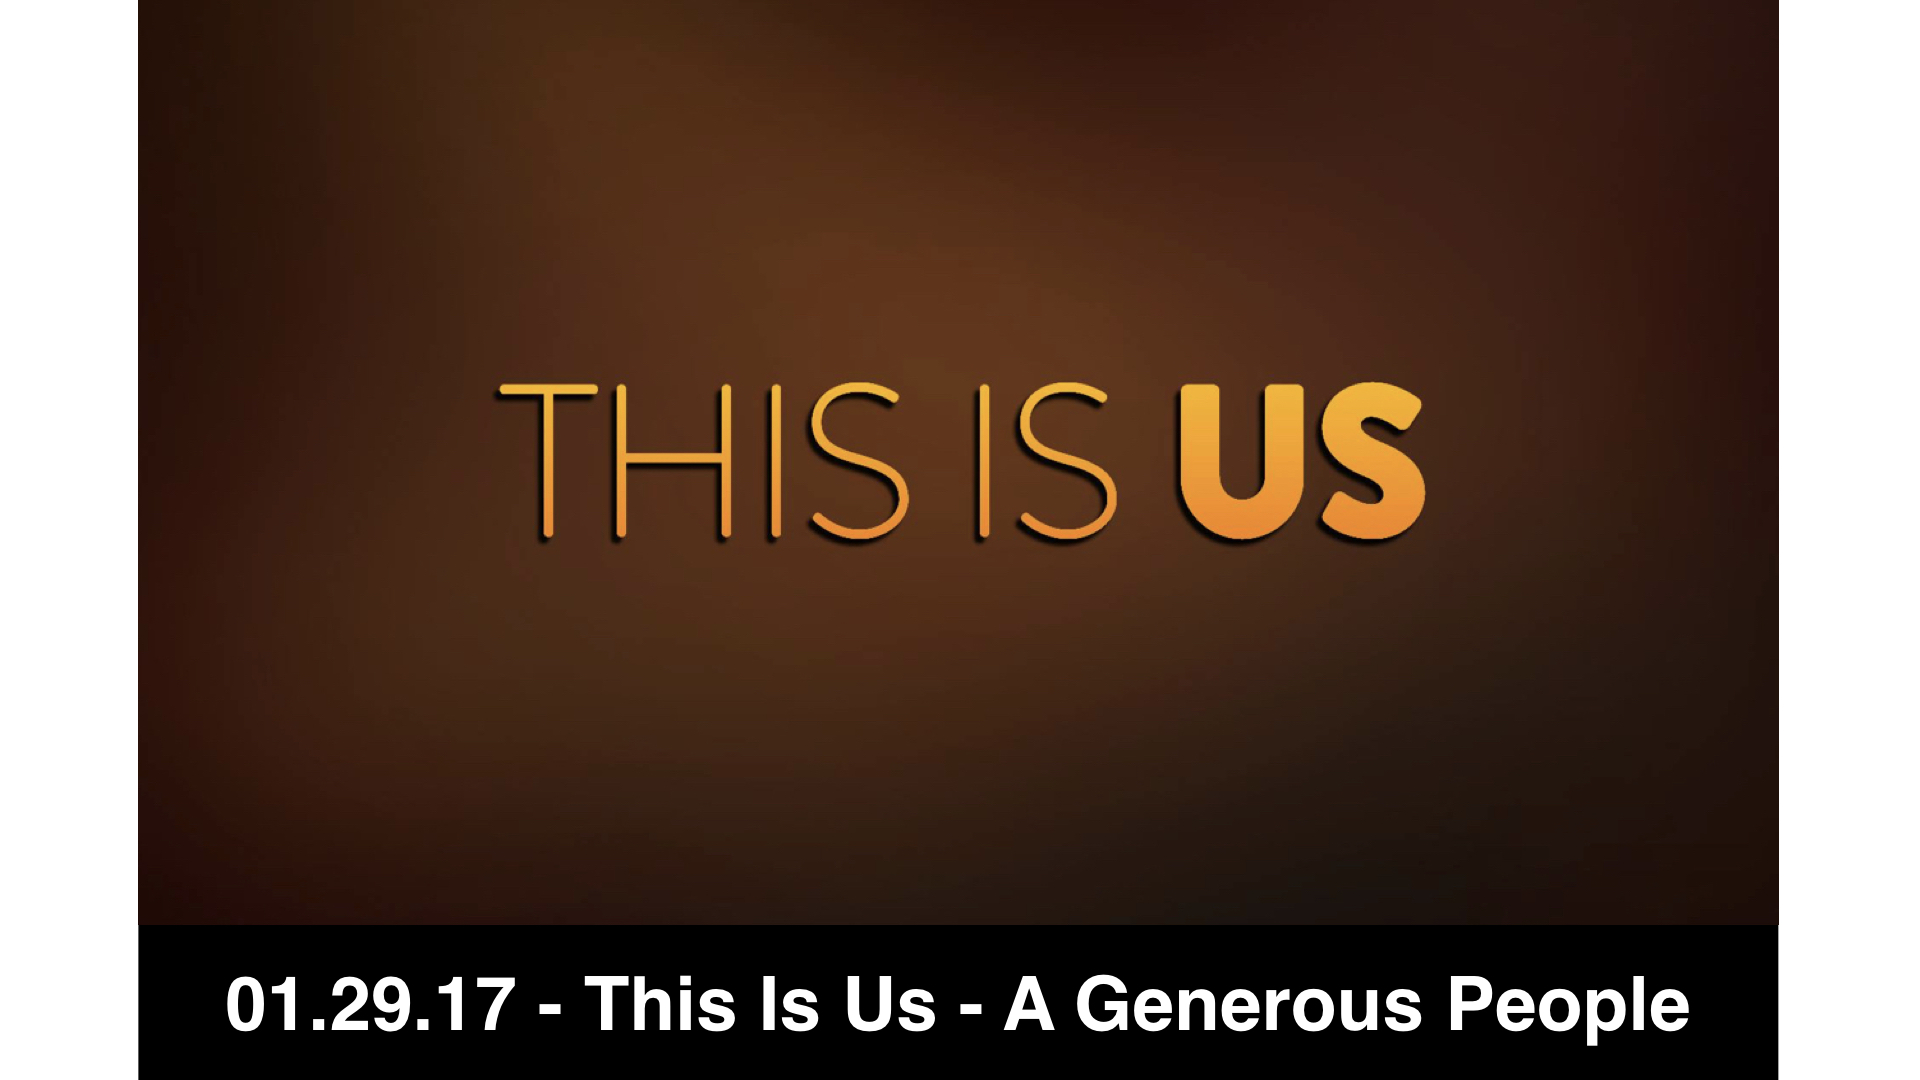 01.19.17 - This Is Us 4 - Generous People